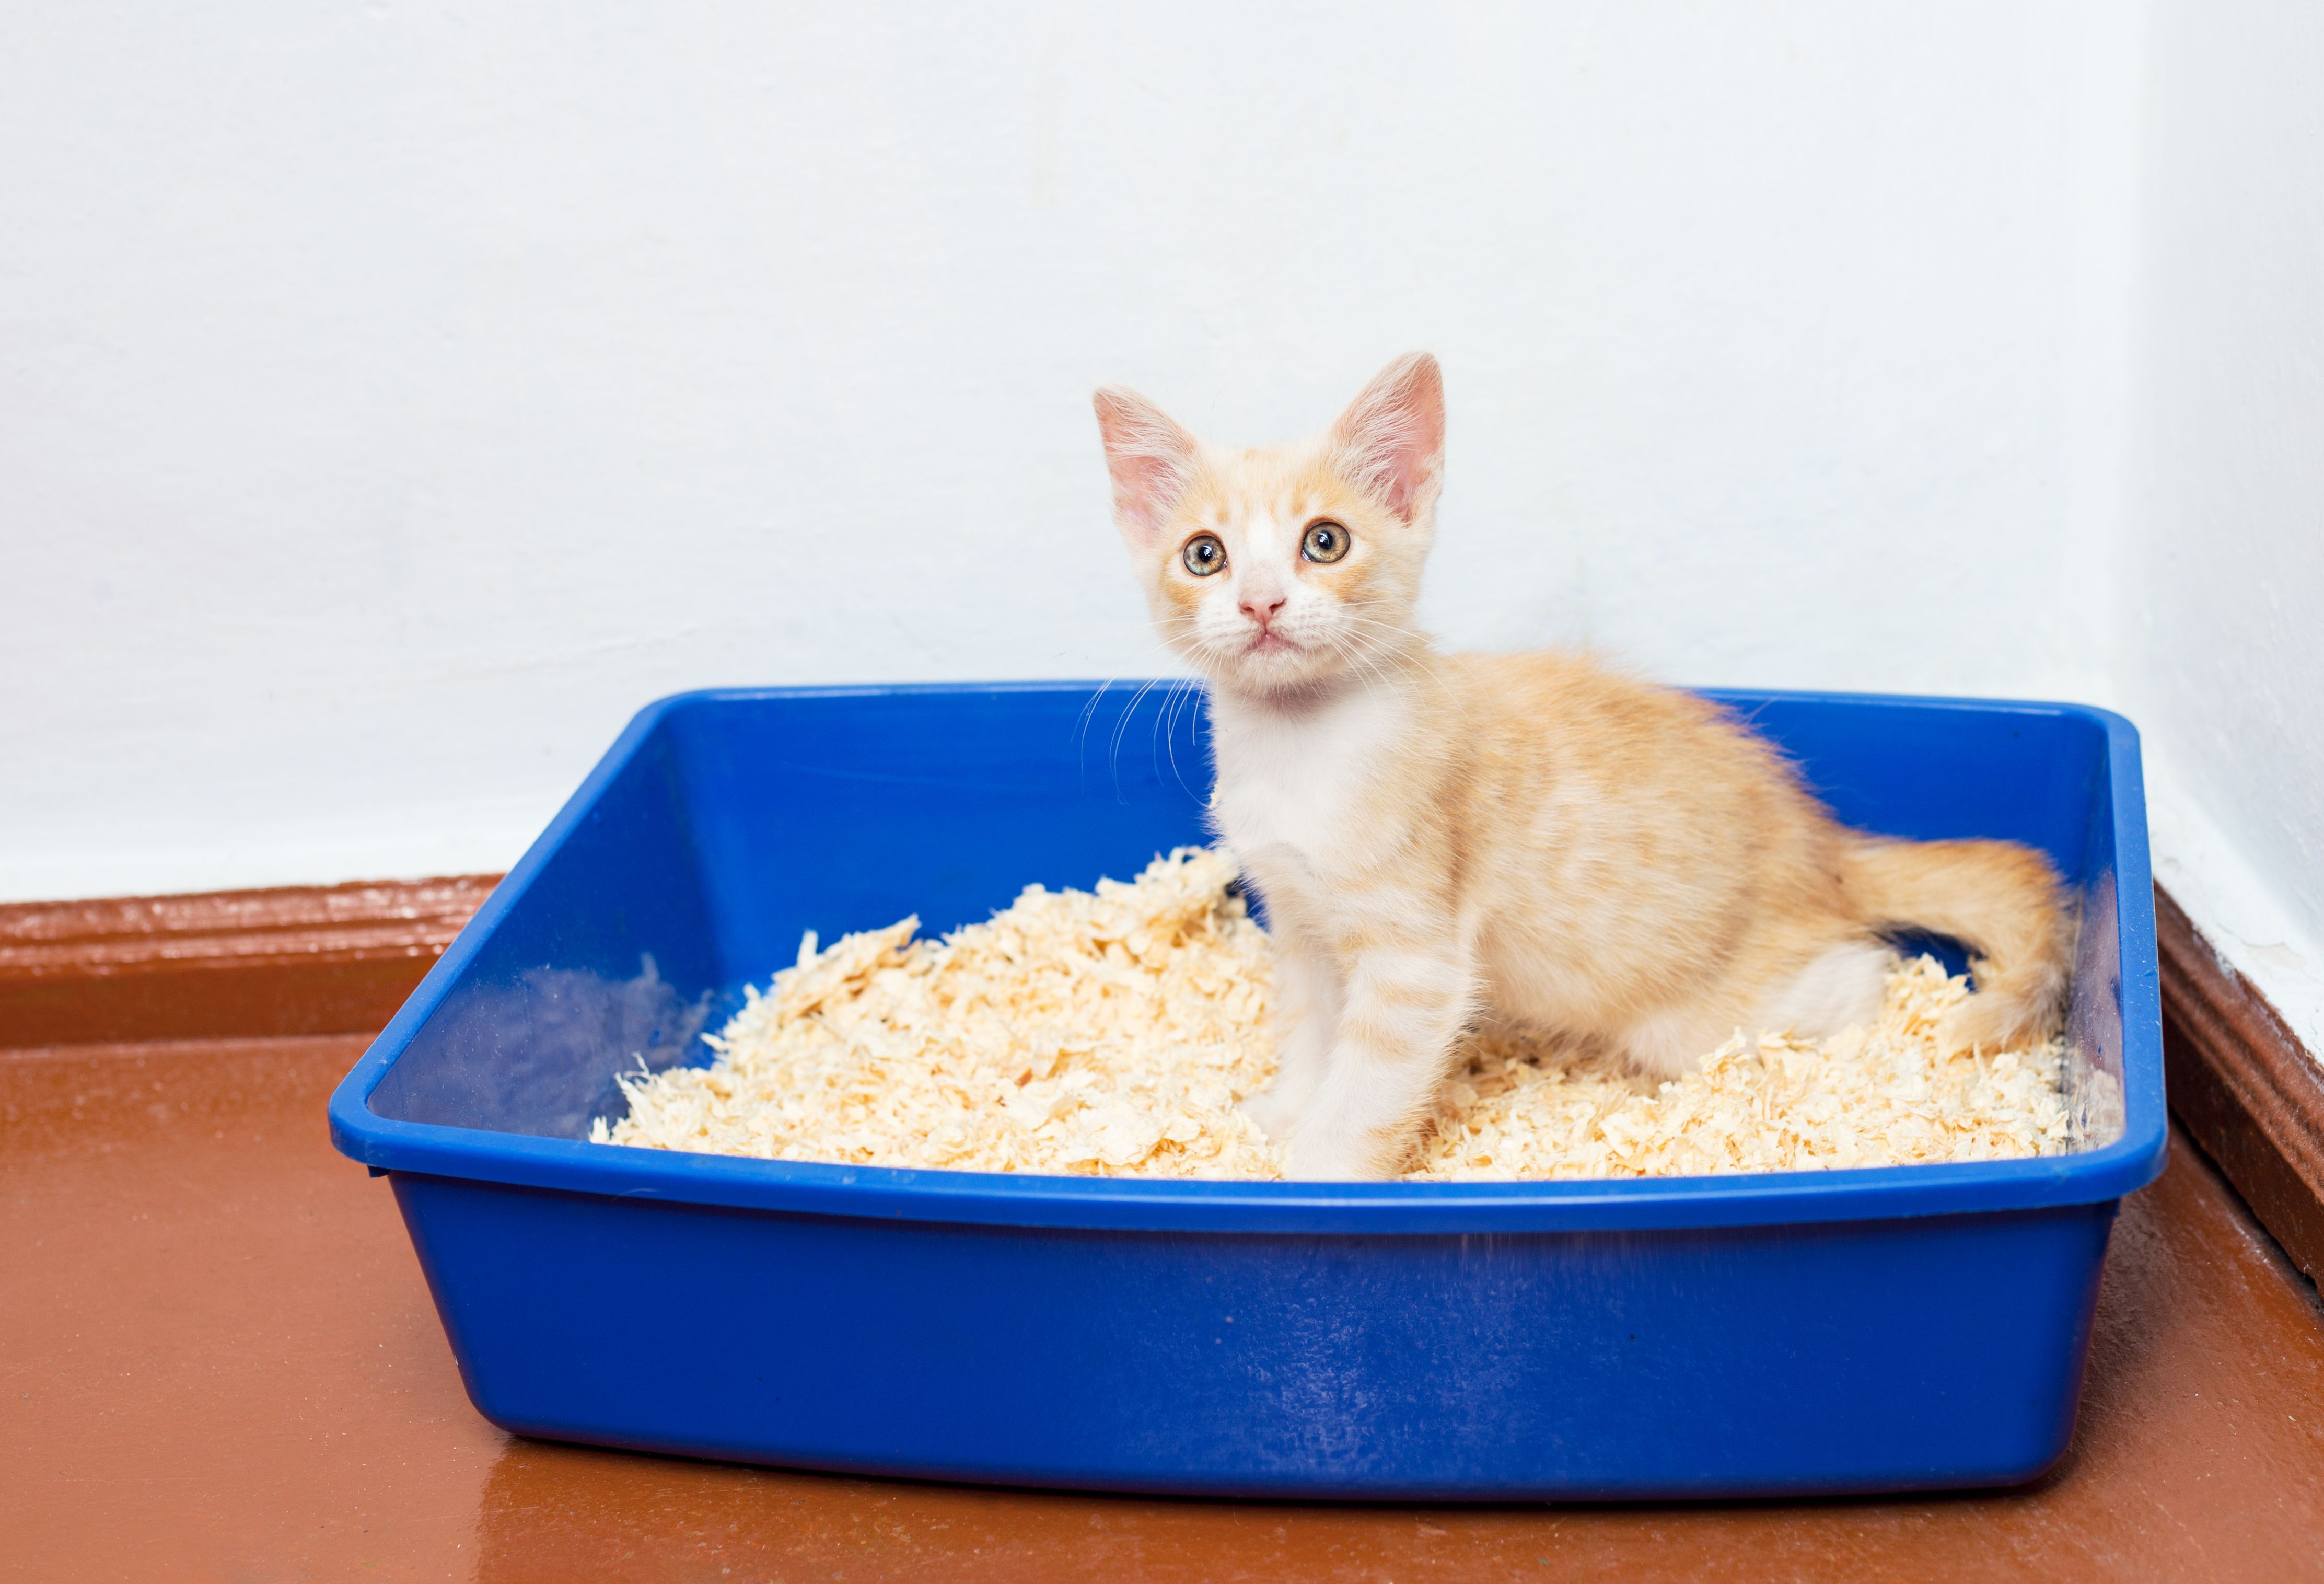 How To Get Rid Of The Smell Of Cat Urine | Cuteness.com